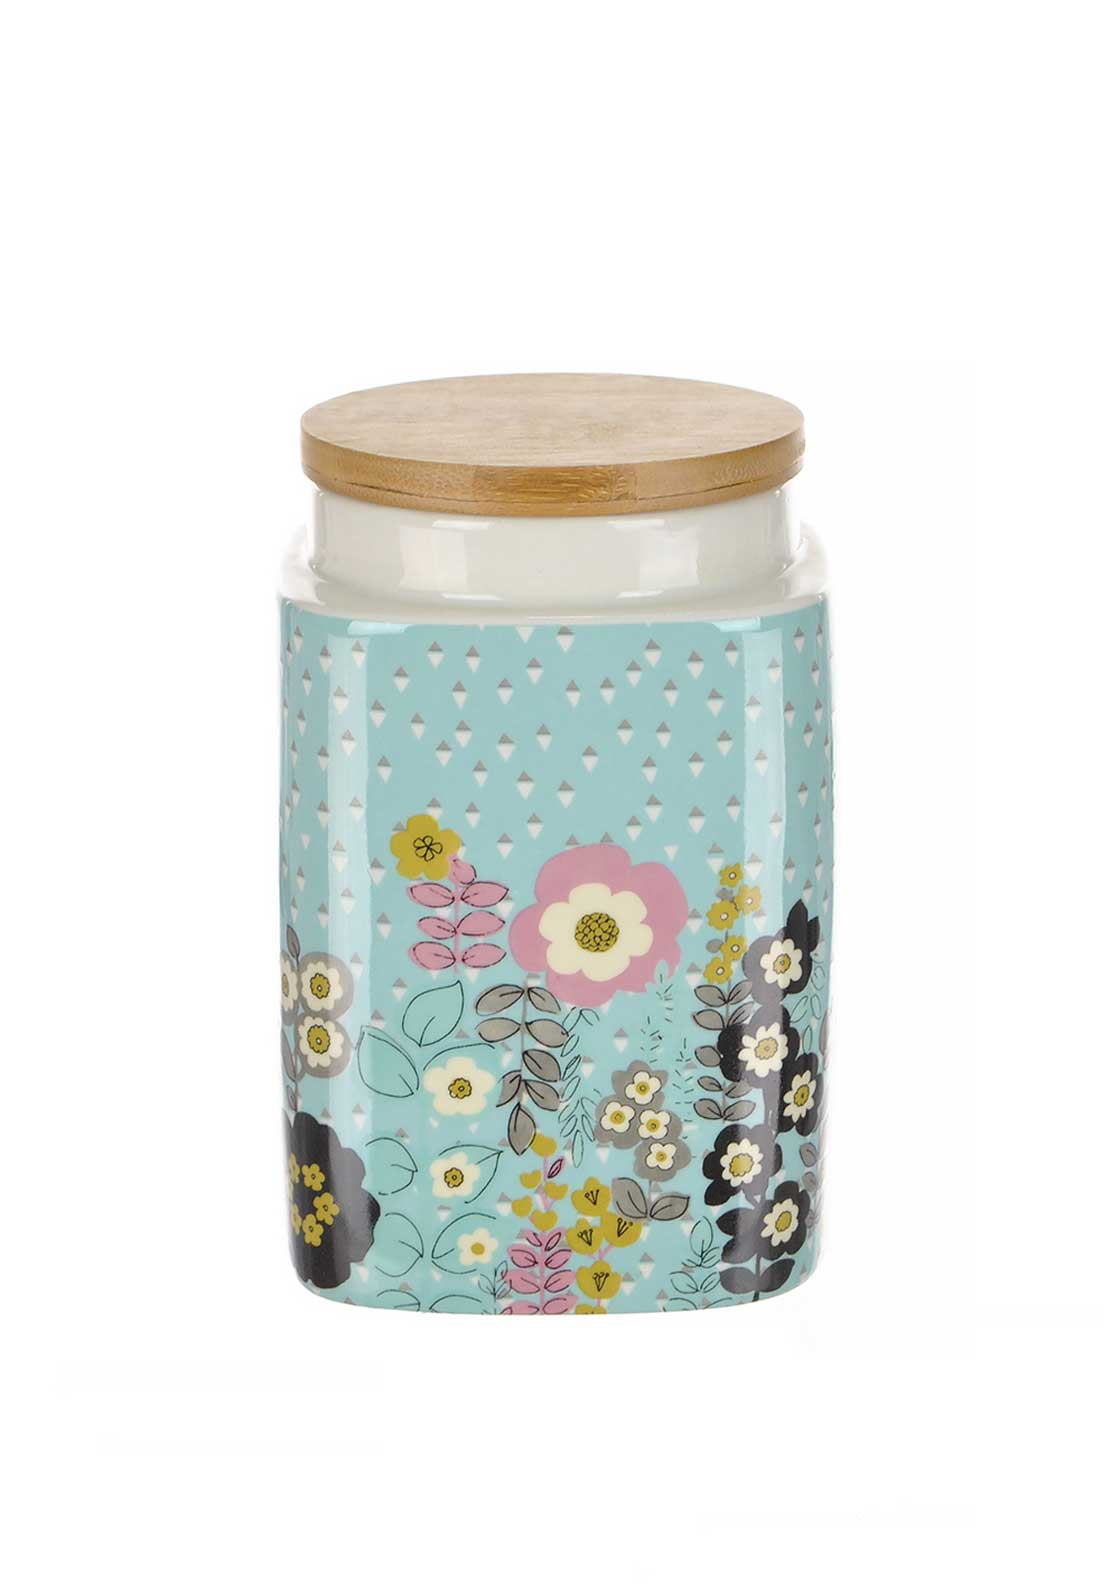 Katie Alice Pretty Retro Medium Stoneware Storage Jar, Pale Blue